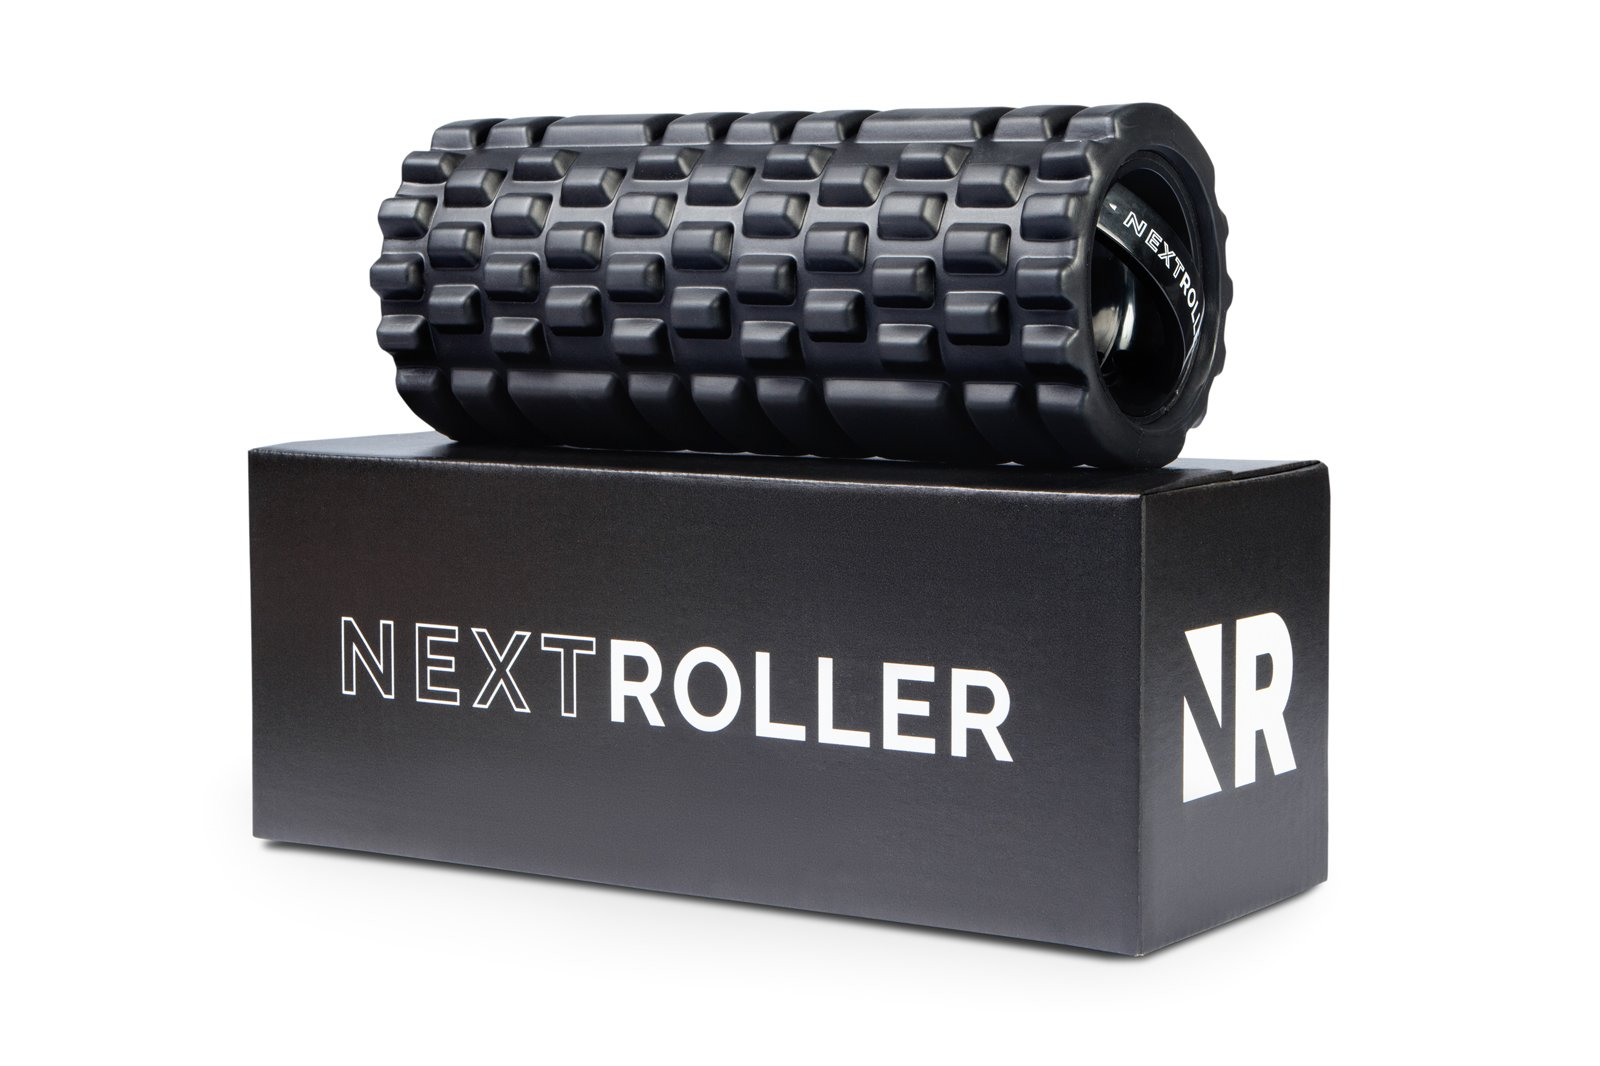 NextRoller 3-Speed Rechargeable Electric Vibrating Foam Roller - The Future of Muscle Recovery, Mobility, and Deep Tissue Trigger Point Sports Massage Therapy - Firm High Density, 1 Year Warranty by NextRoller